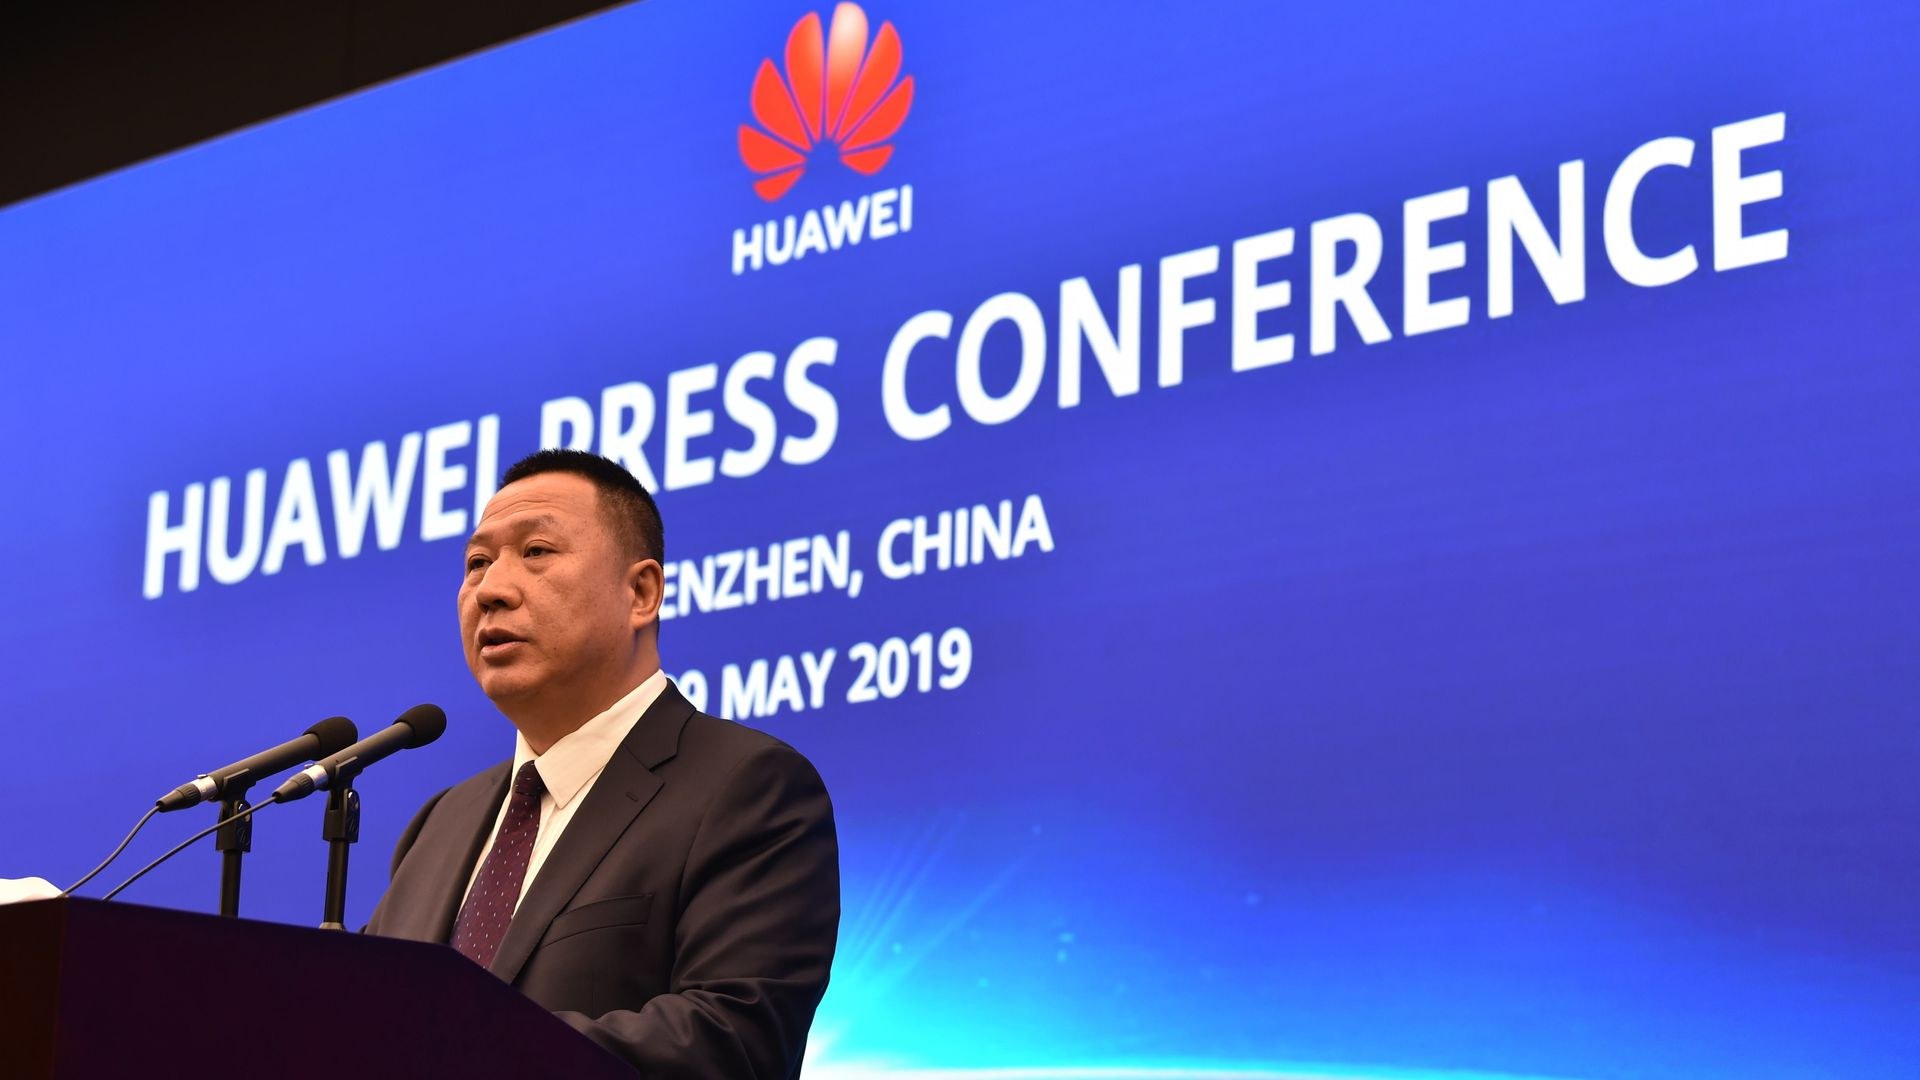 Song Liuping, chief legal officer of Chinese tech giant Huawei, speaks during a press conference at the Huawei facilities in Shenzhen, Guangdong province, on May 29, 2019.